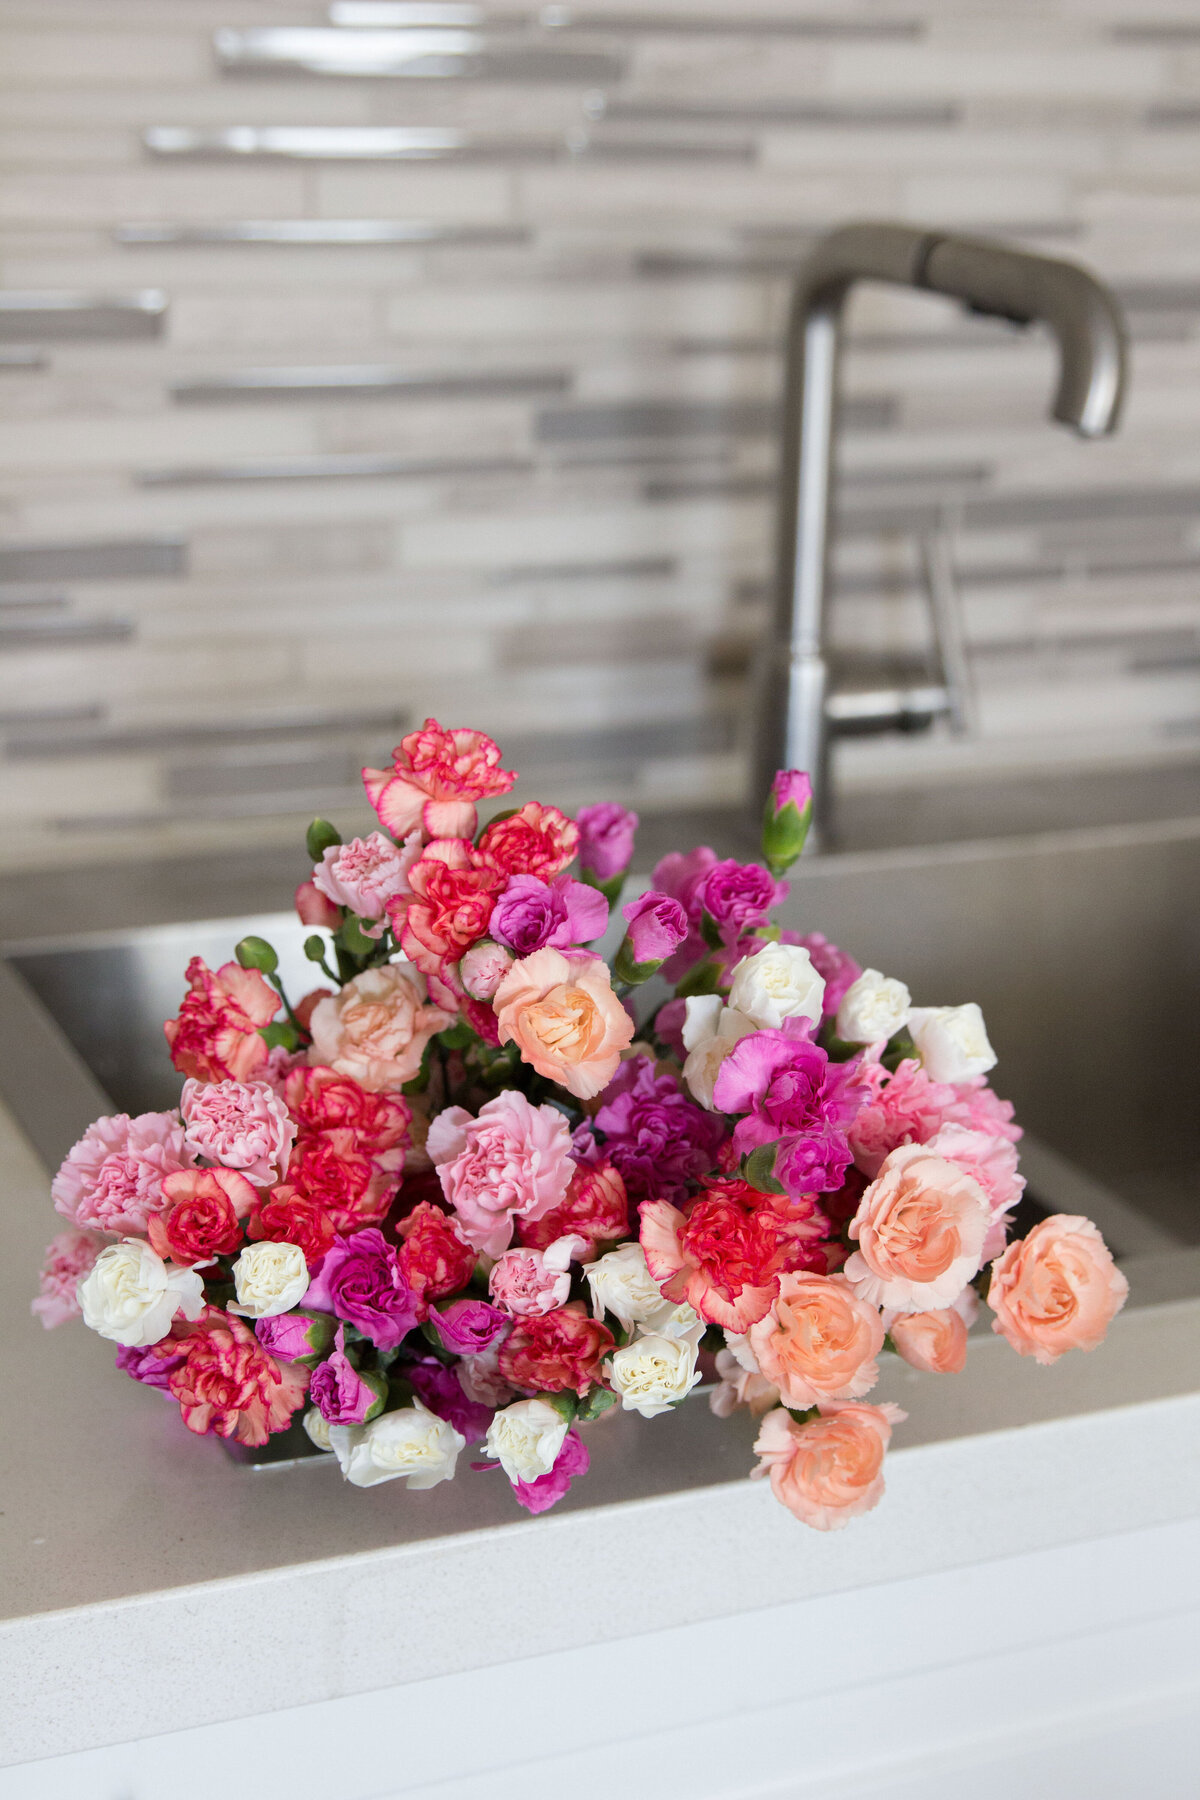 flowers-in-sink